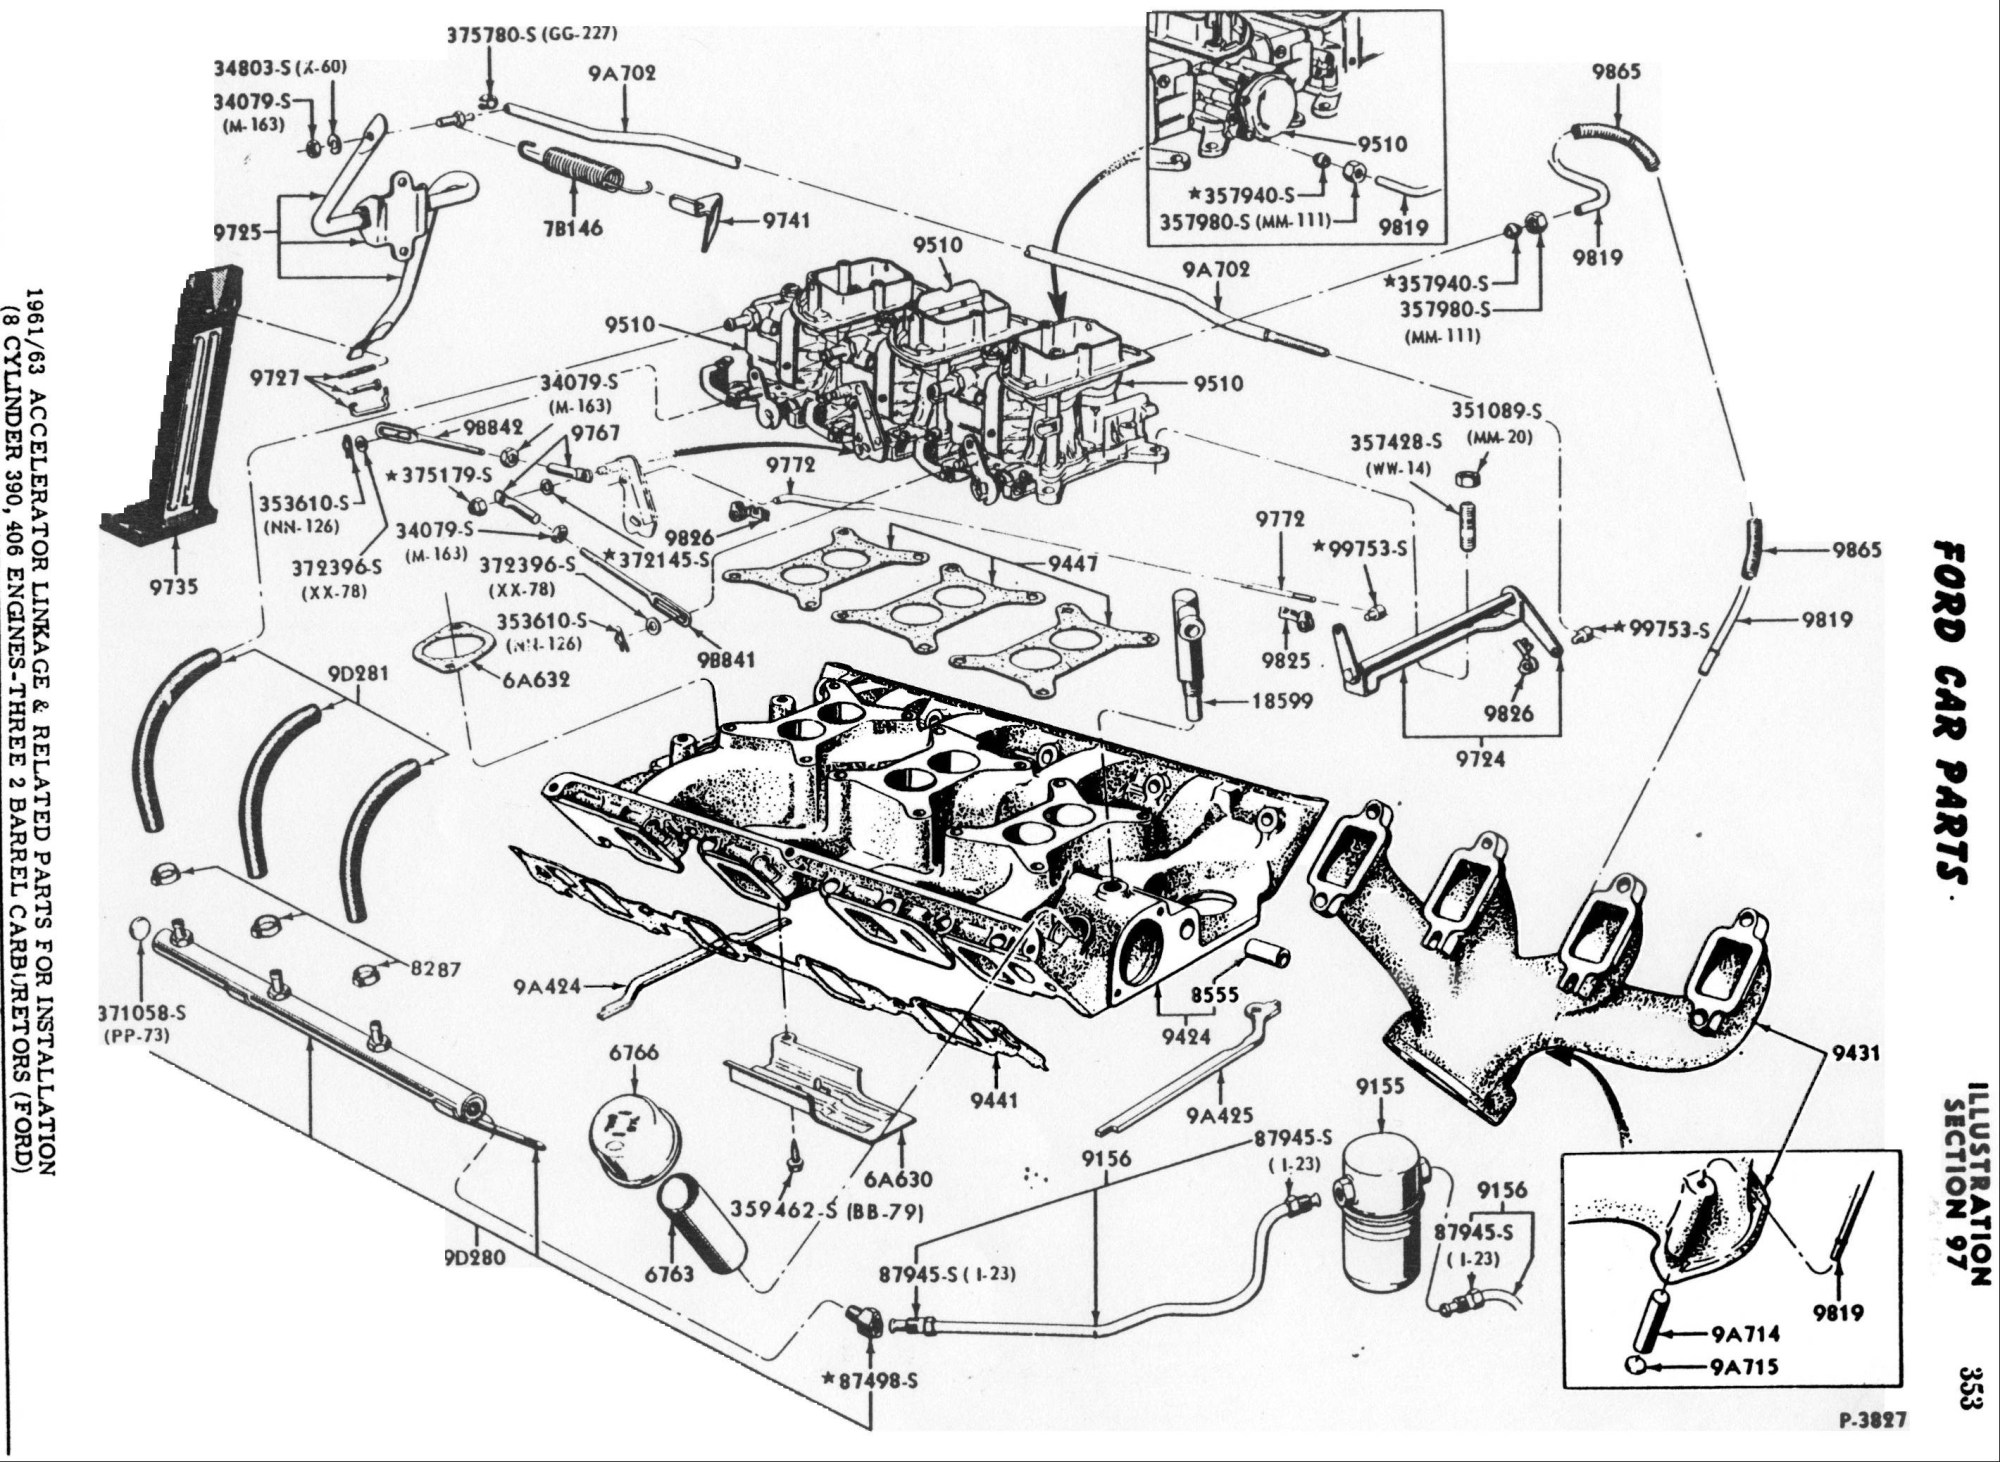 hight resolution of 460 ford engine exploded diagram wiring diagram details wiring diagram for 1976 ford e350 as well as ford 460 vacuum diagram